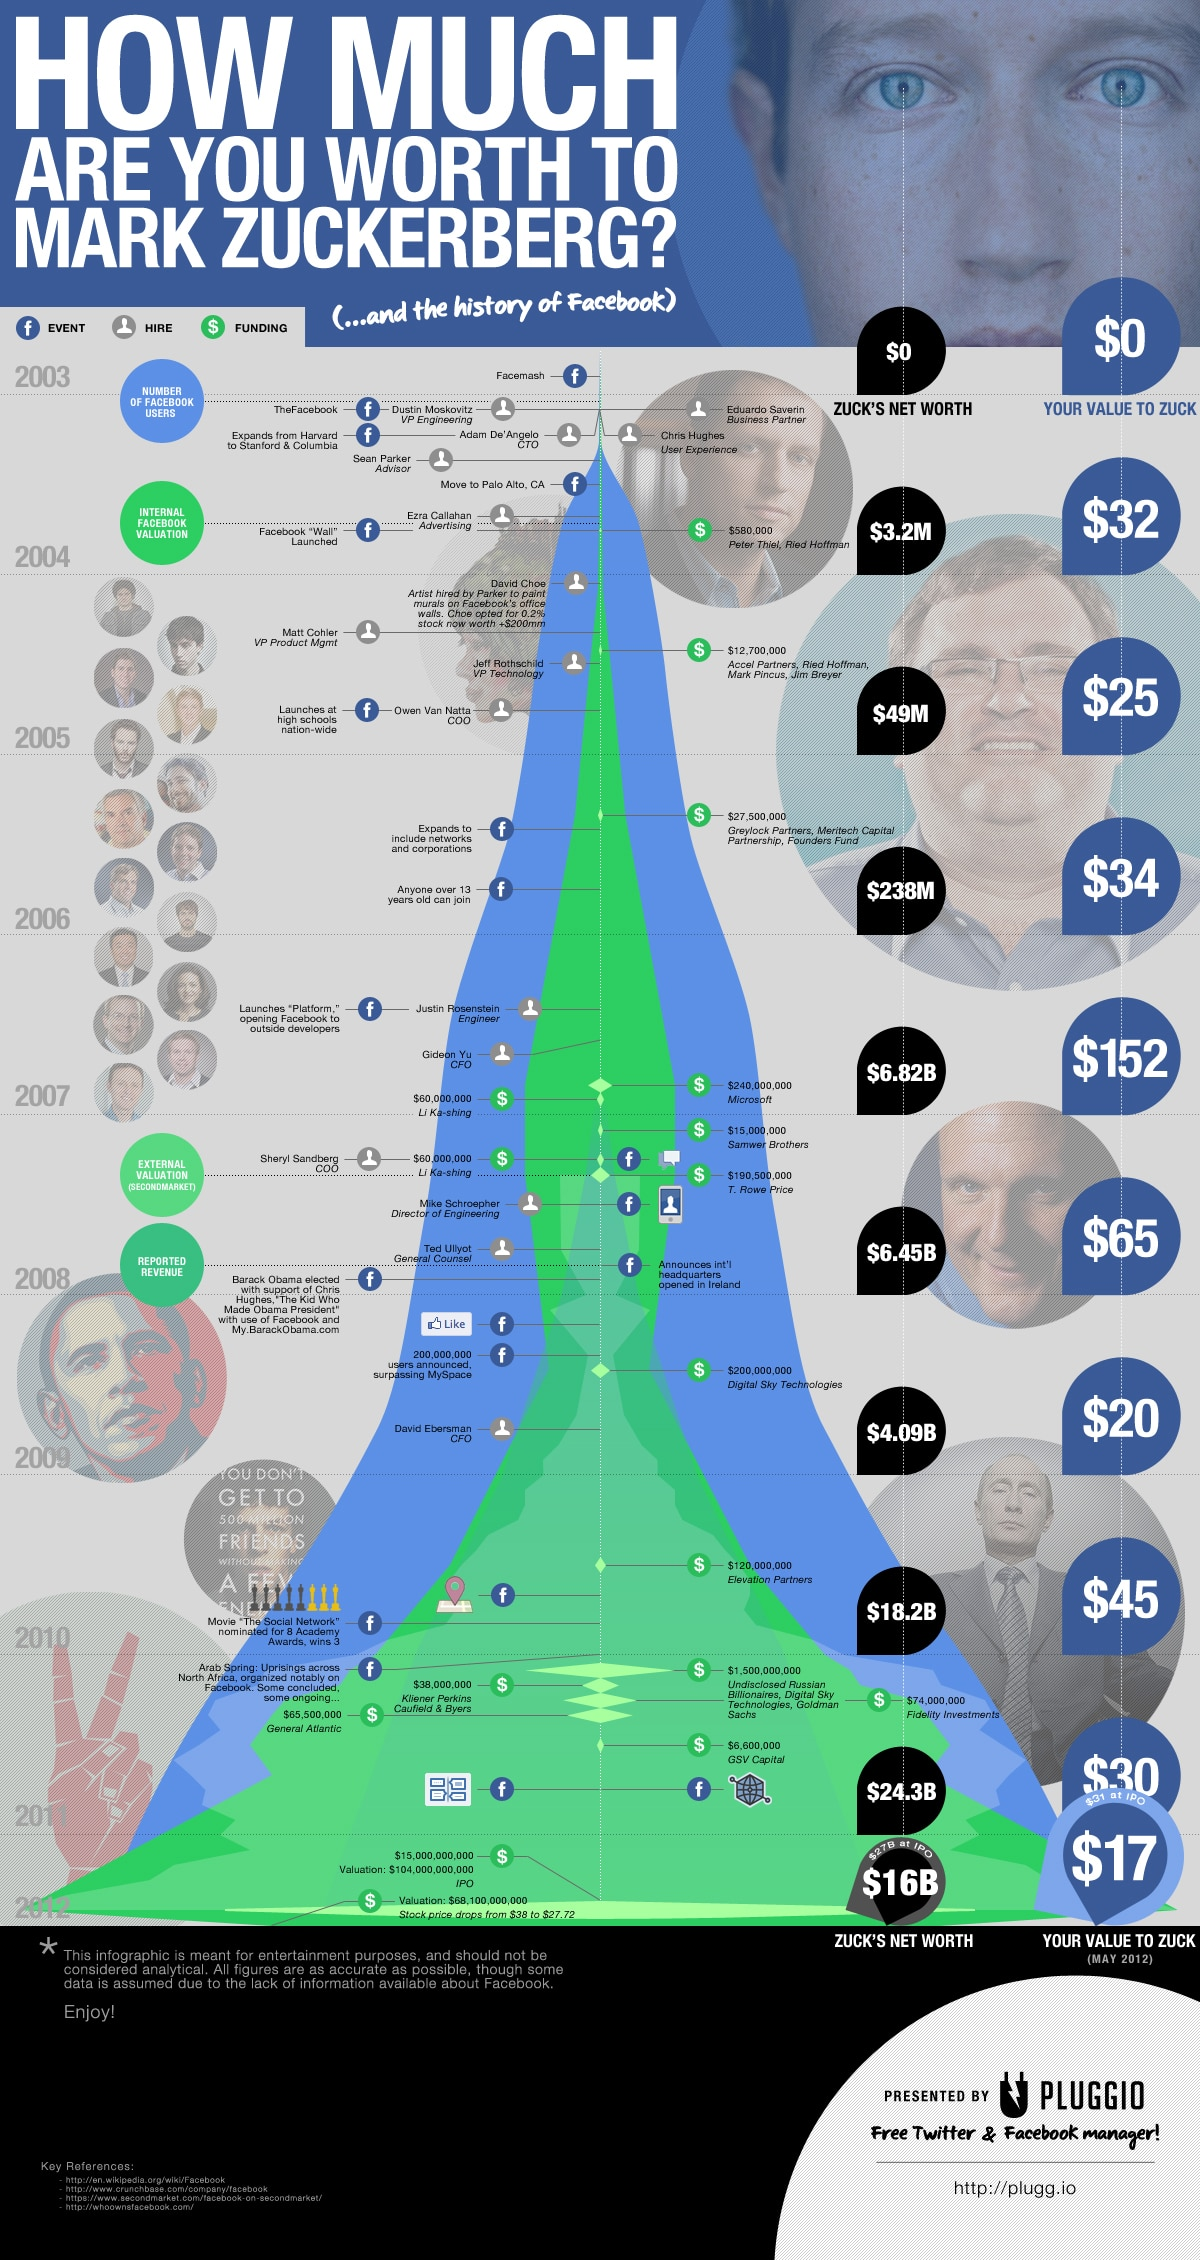 What You Are Worth To Mark Zuckerberg [Infographic]